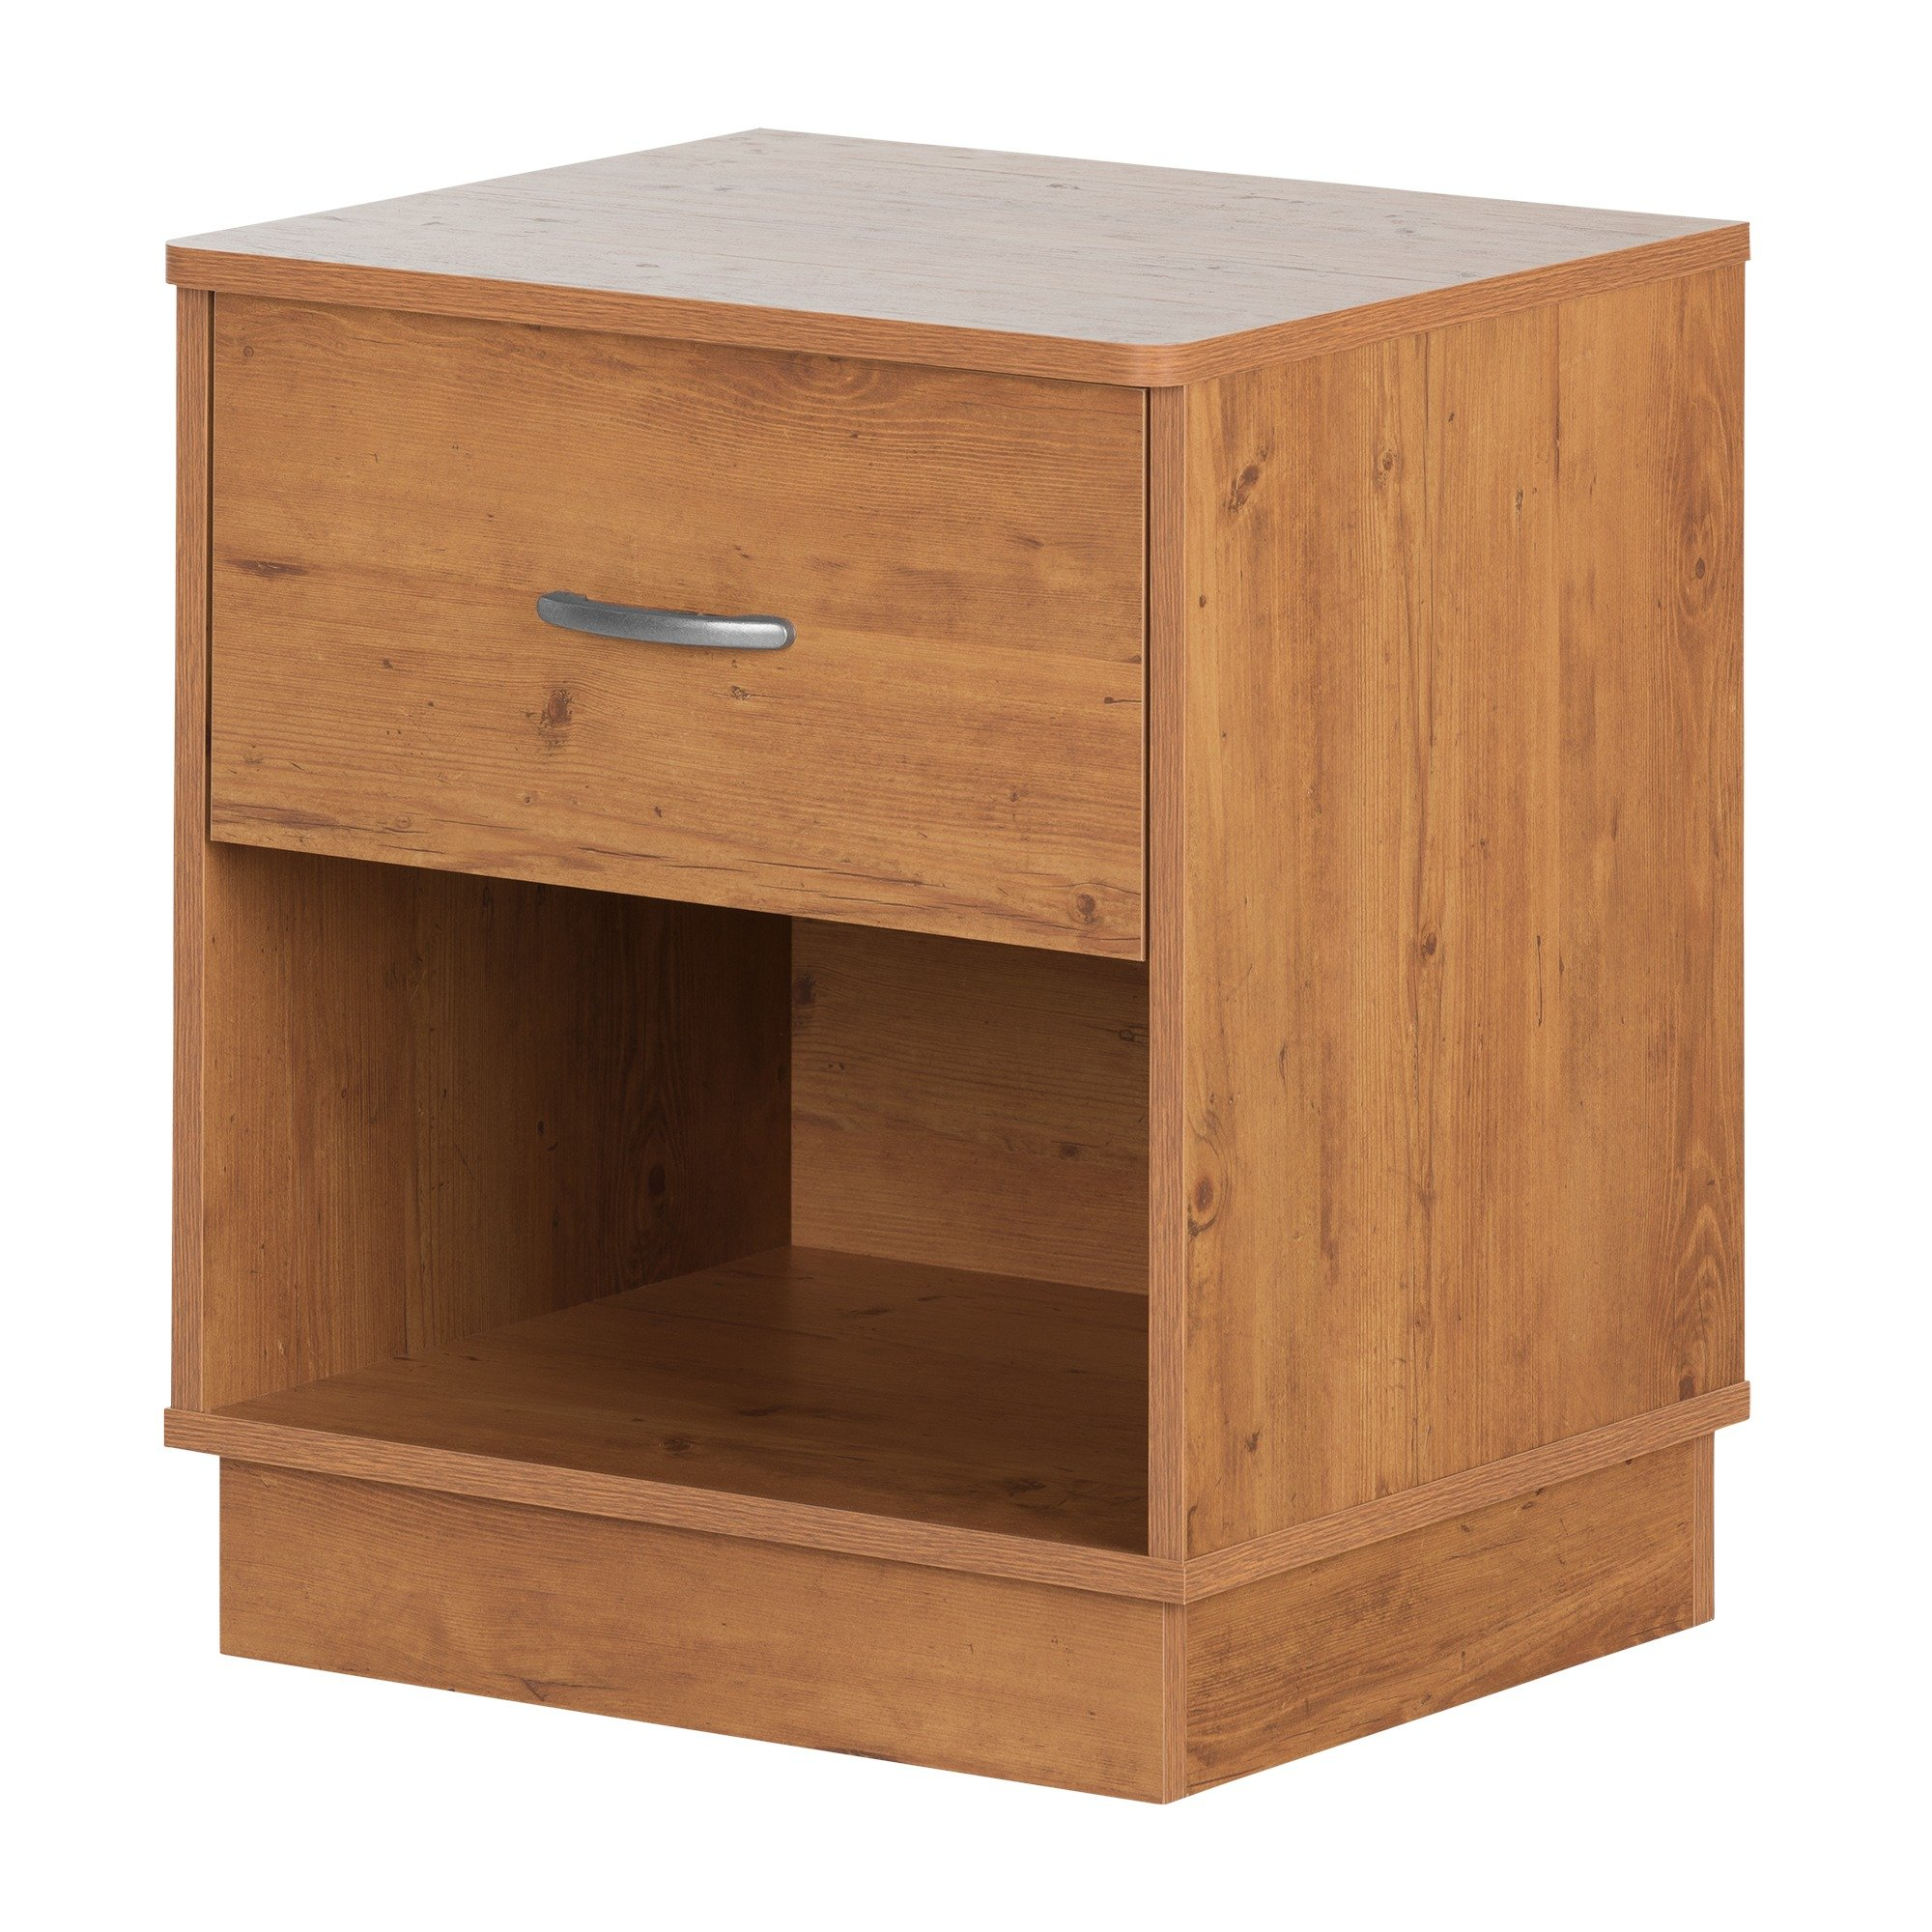 South Shore Logik 1-Drawer Nightstand, Country Pine with Metal Handle